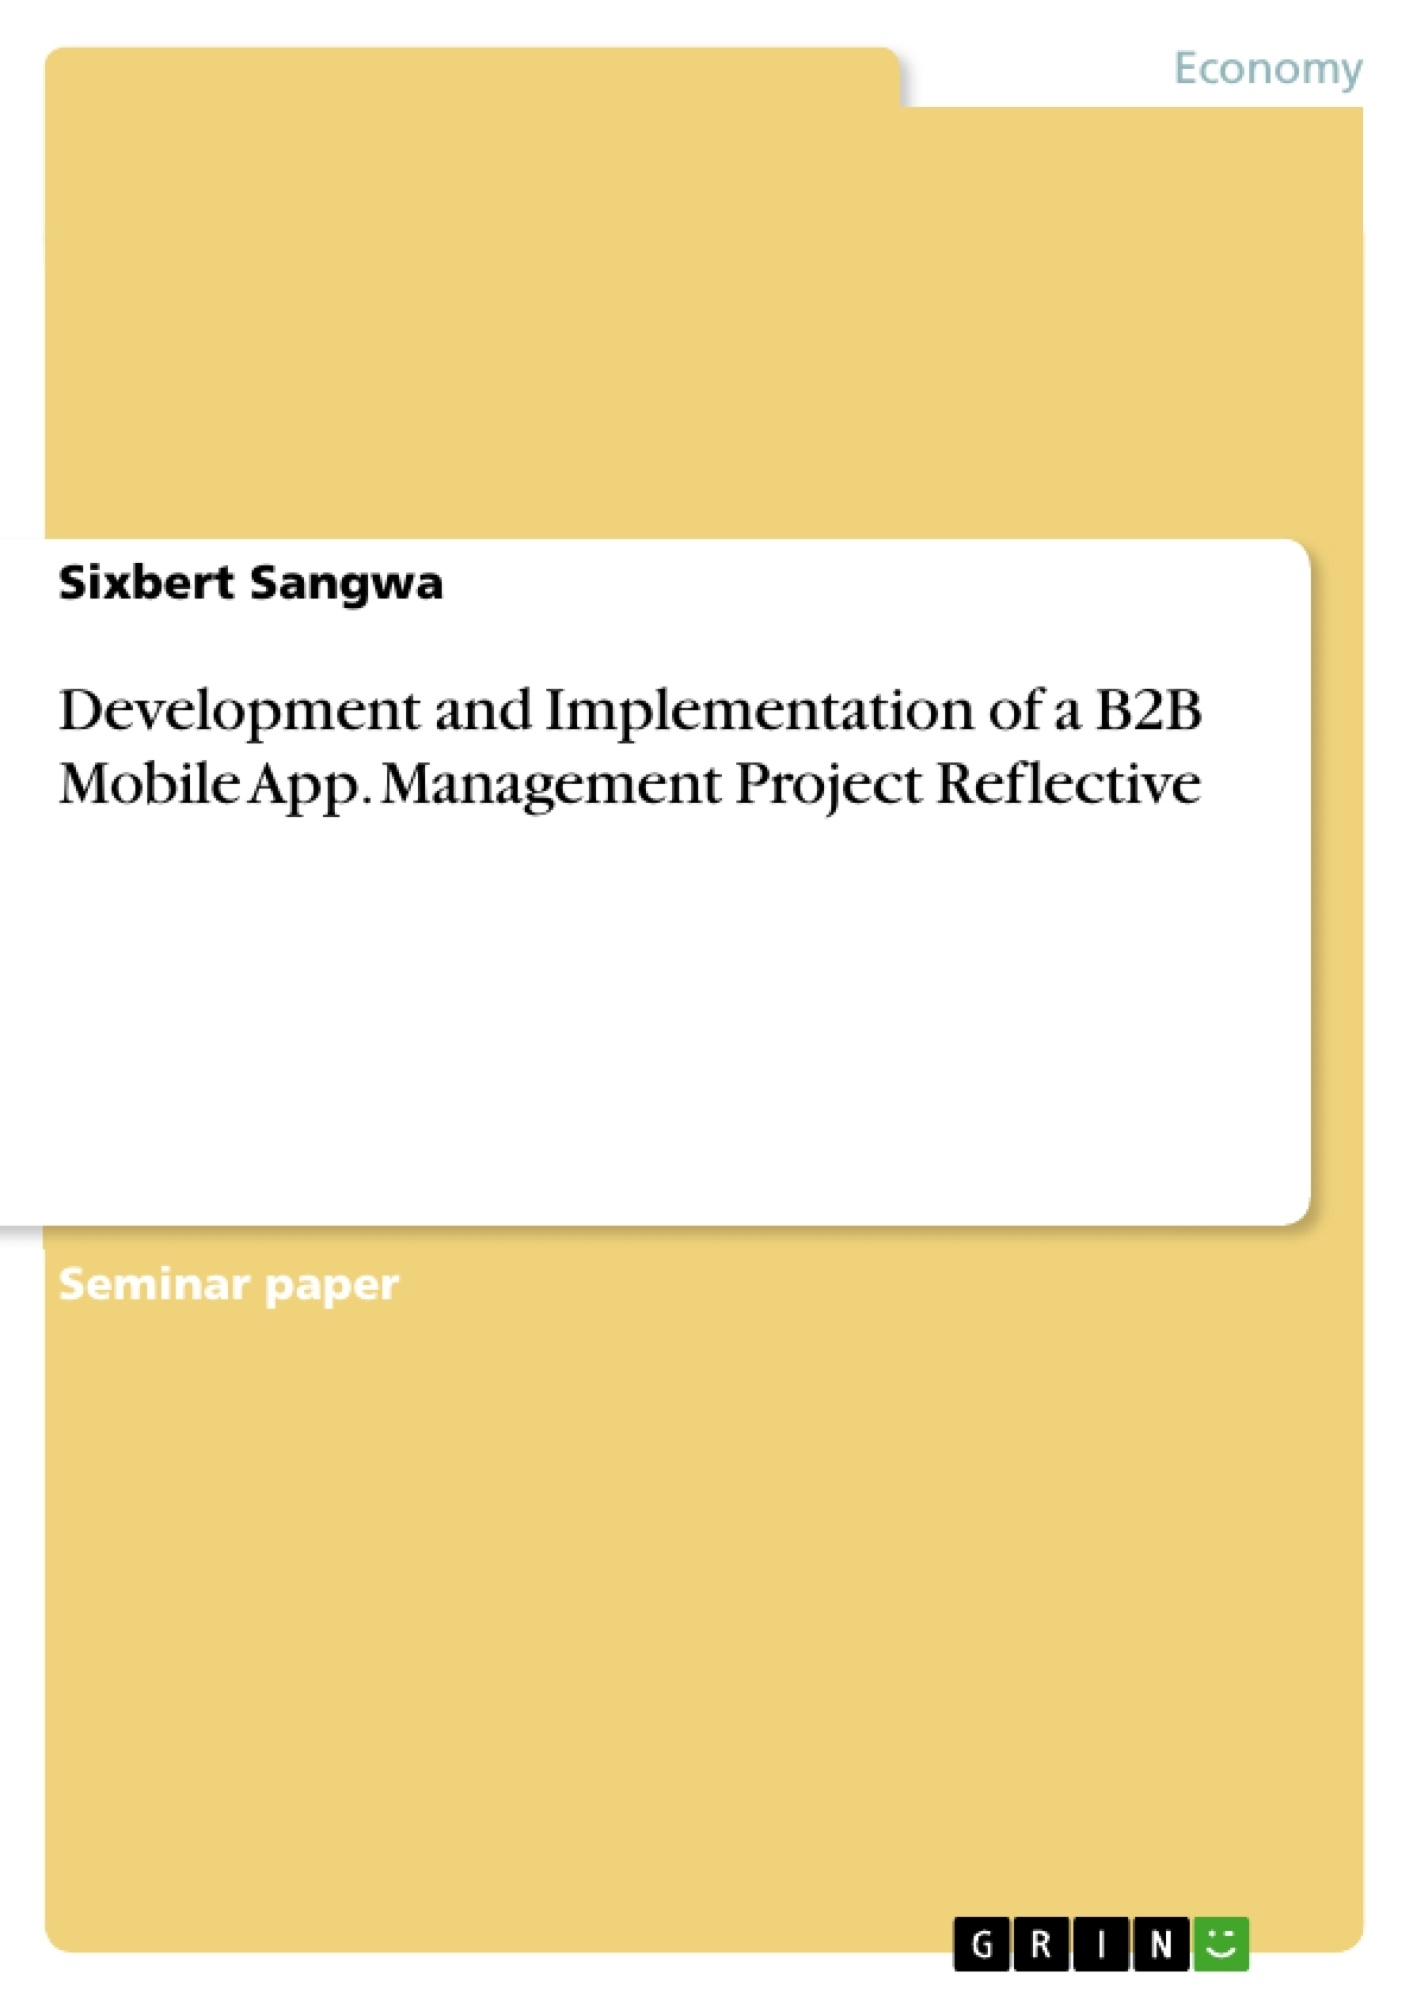 Title: Development and Implementation of a B2B Mobile App. Management Project Reflective